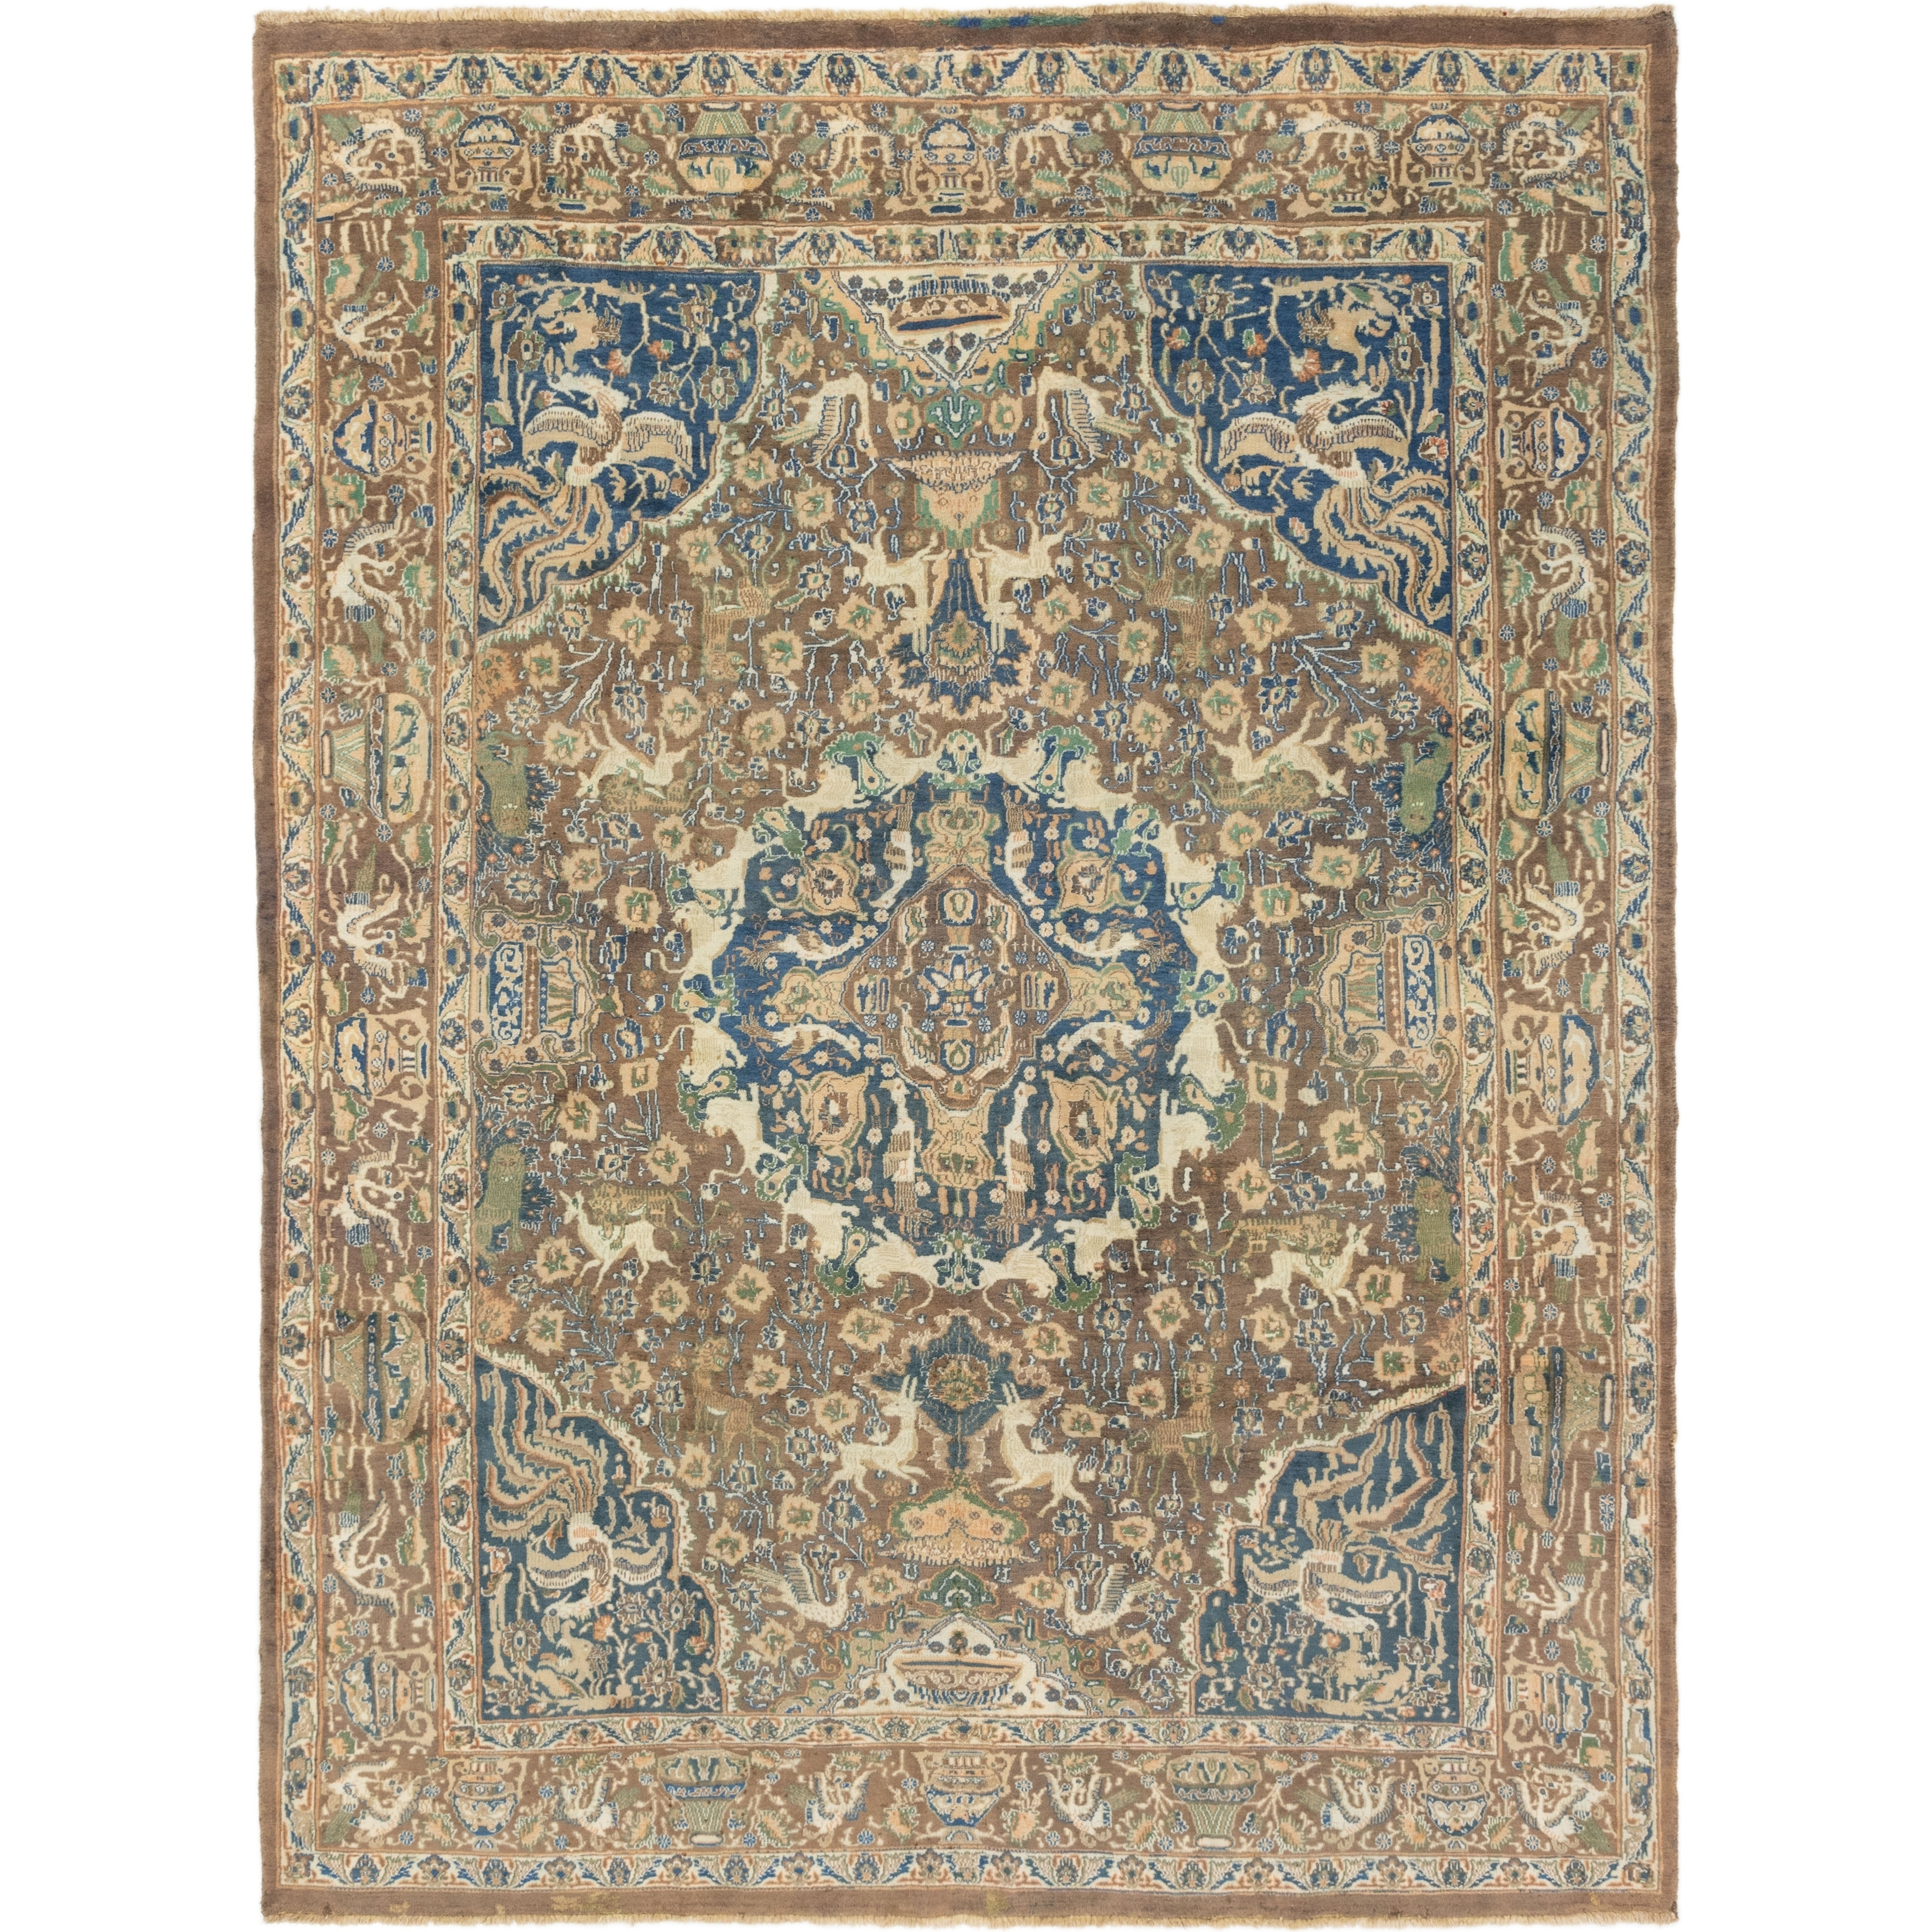 Hand Knotted Kashmar Semi Antique Wool Area Rug - 9 9 x 12 10 (Brown - 9 9 x 12 10)